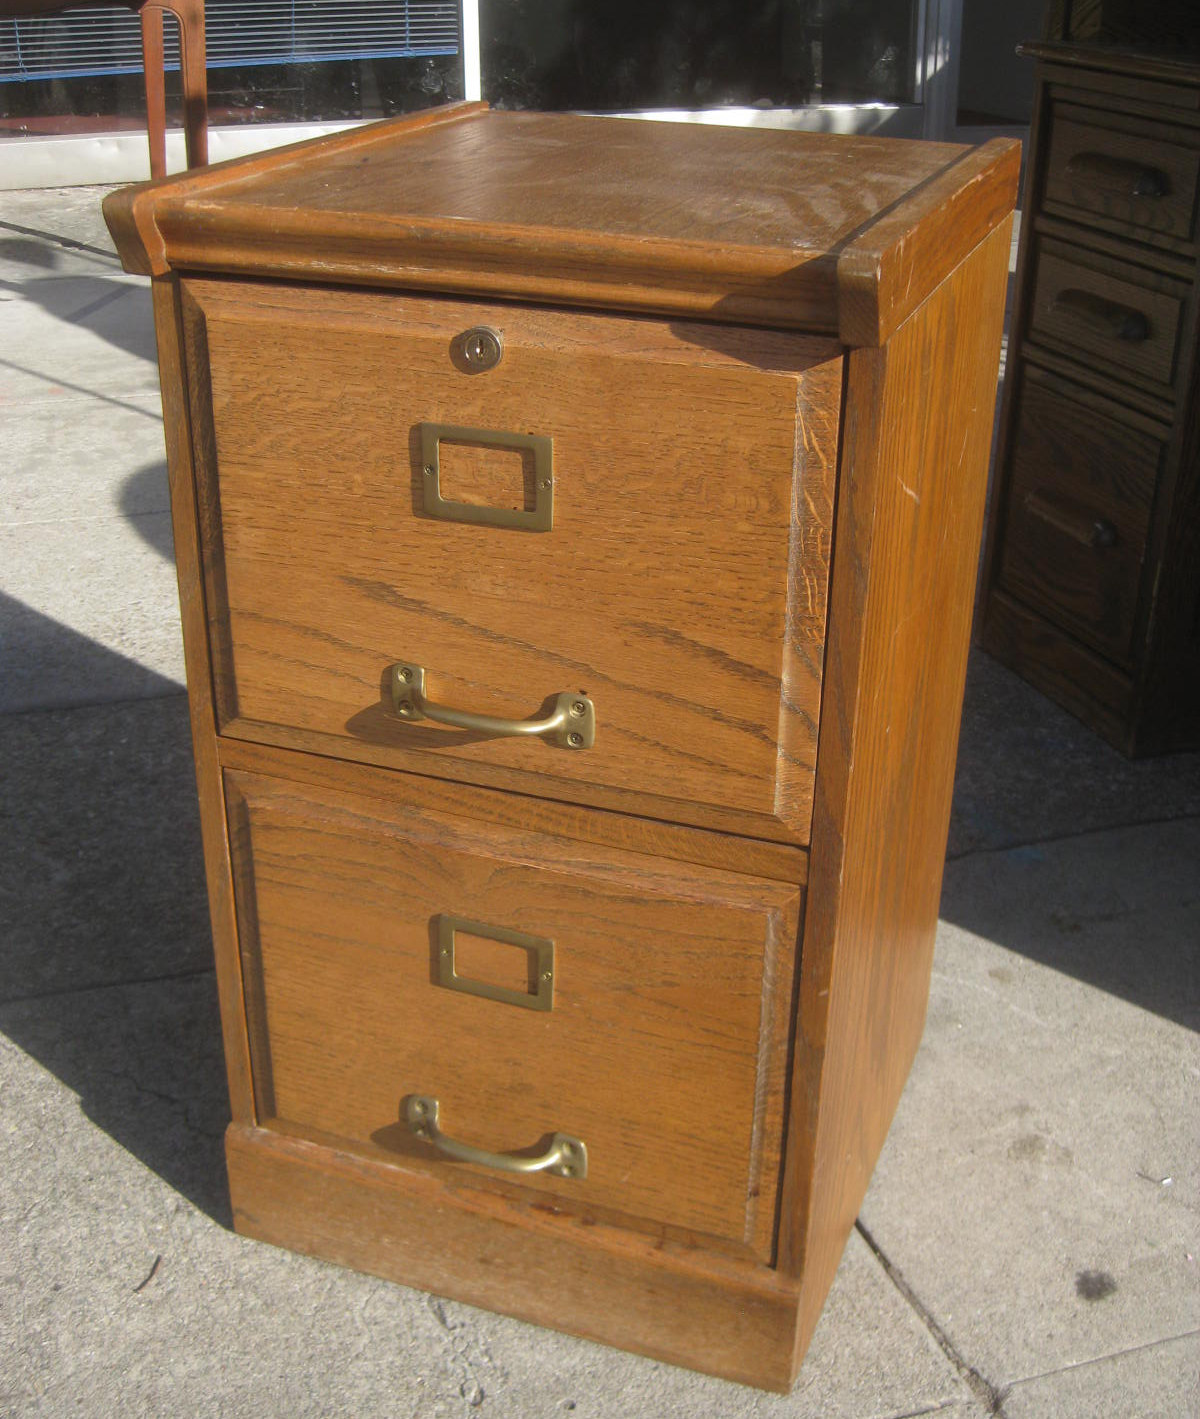 2 Drawer File Cabinet Uhuru Furniture And Collectibles Sold Oak 2 Drawer File